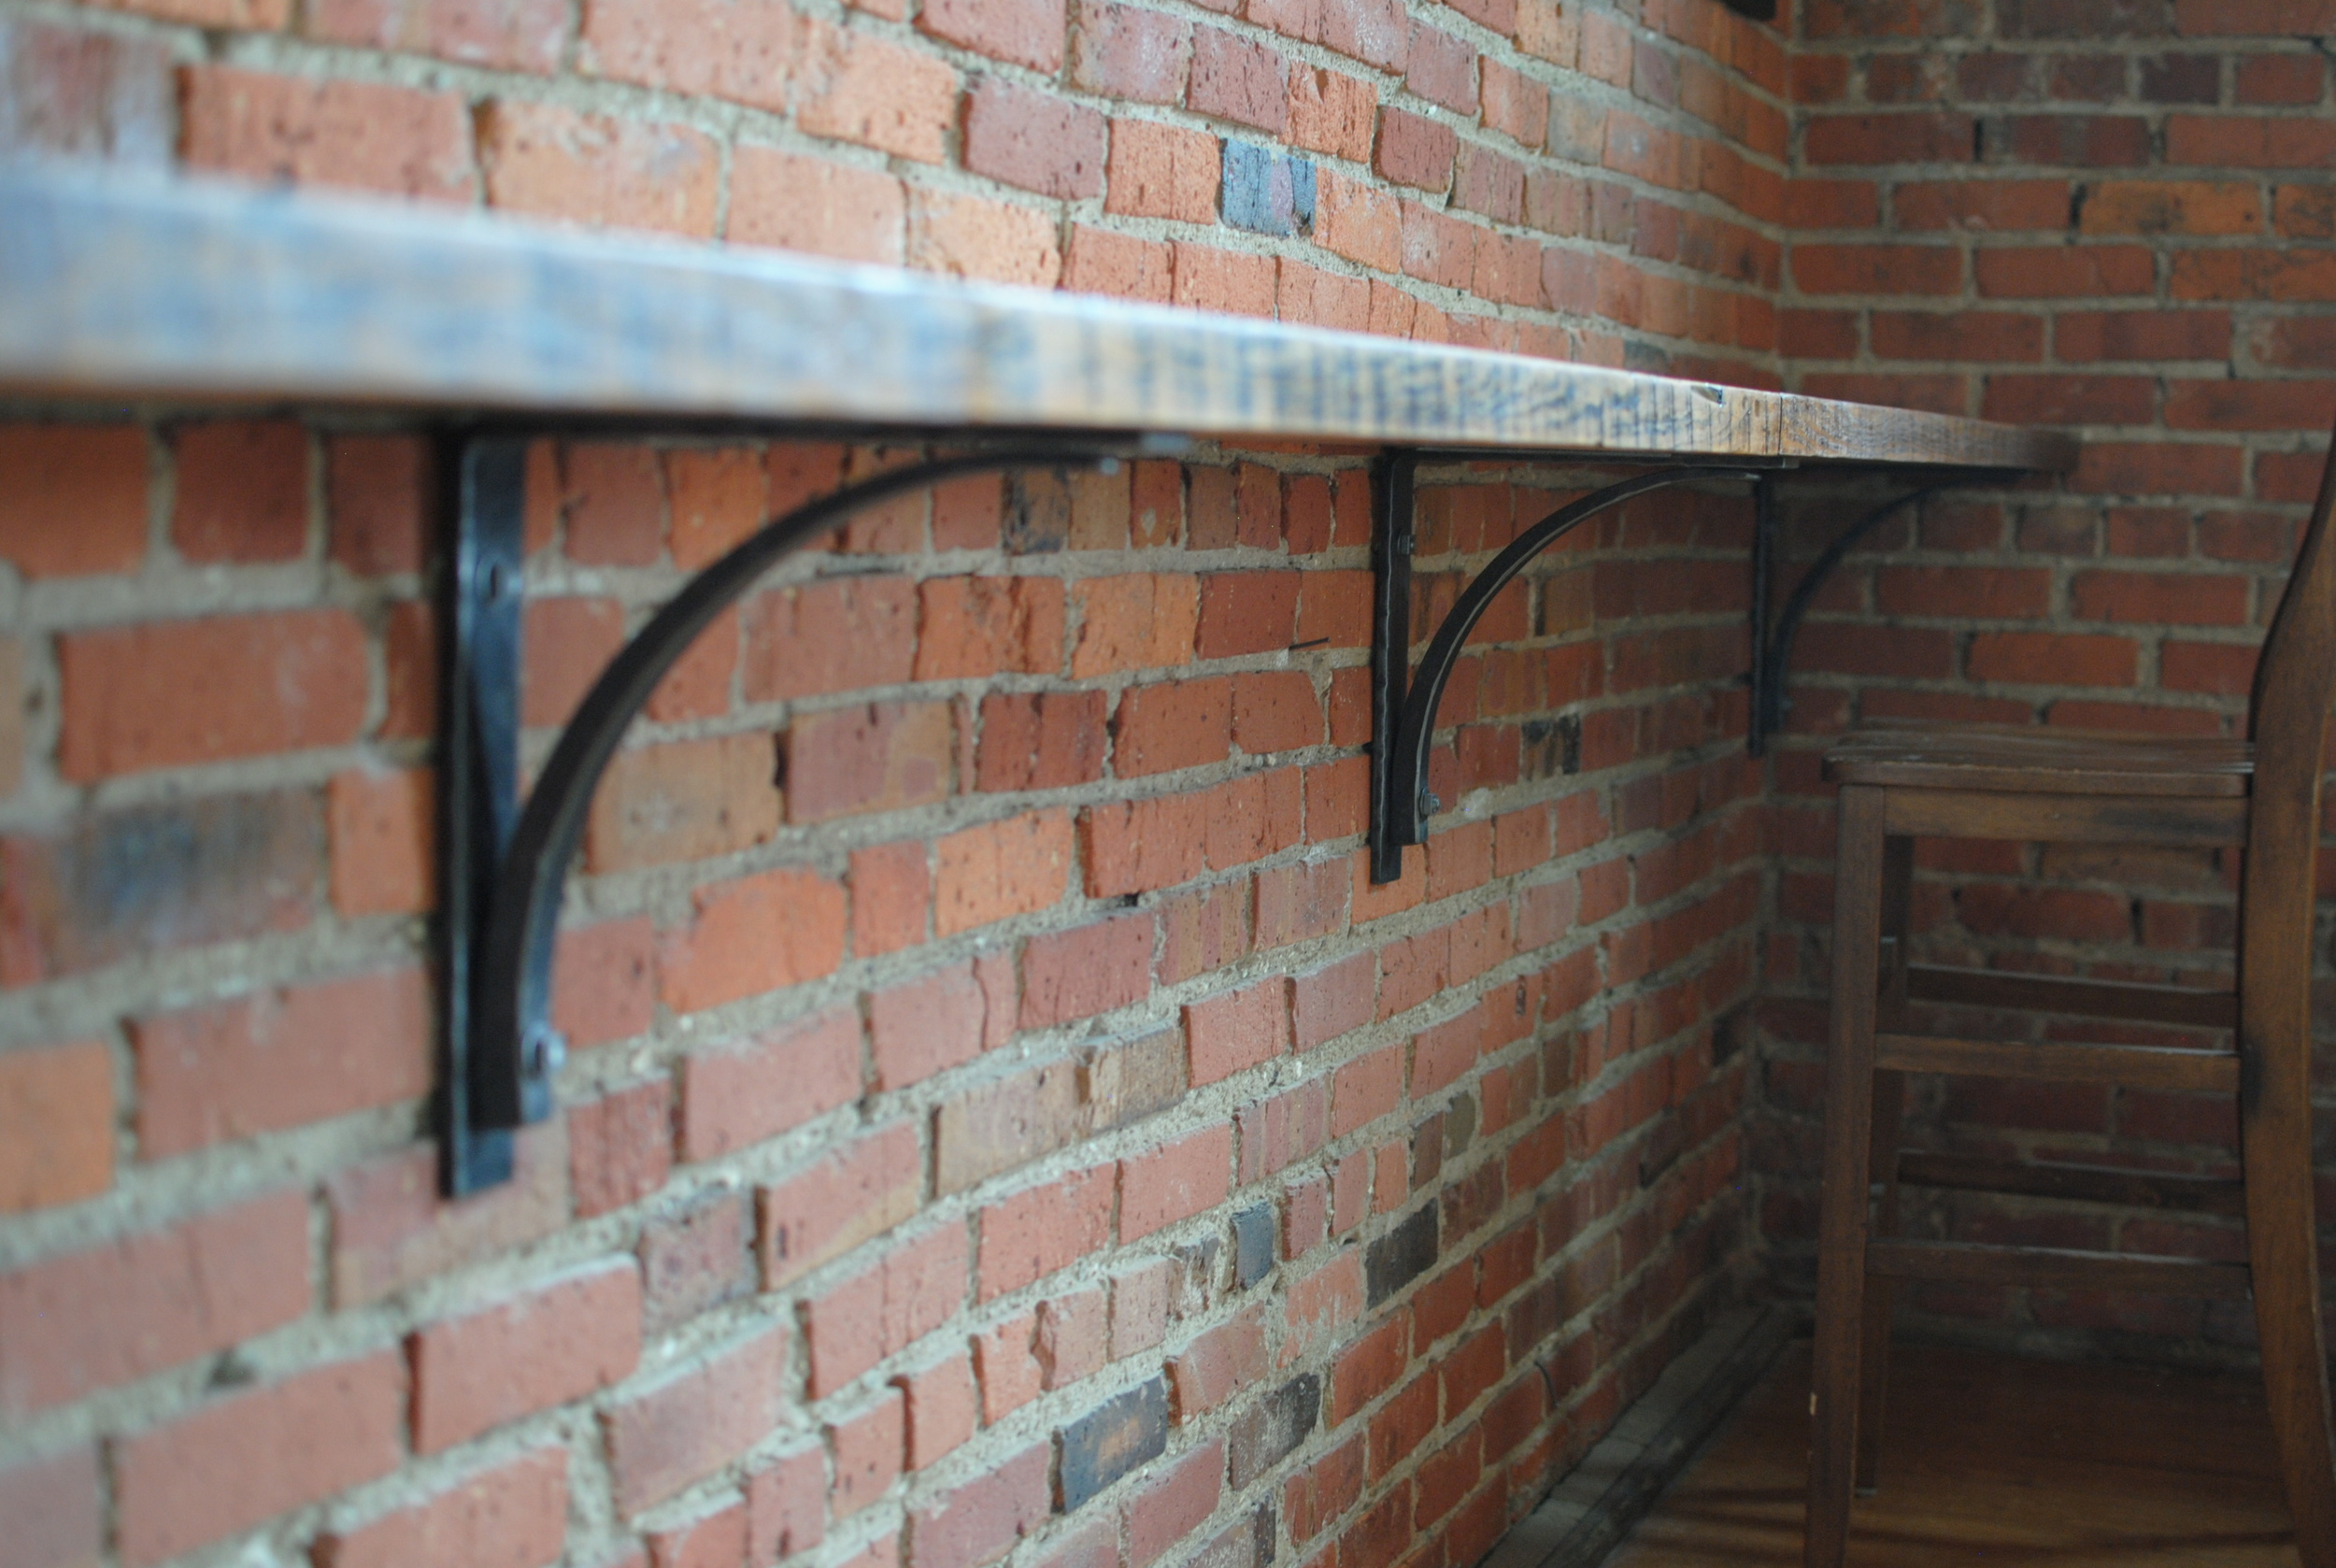 Bar Counter and Brackets